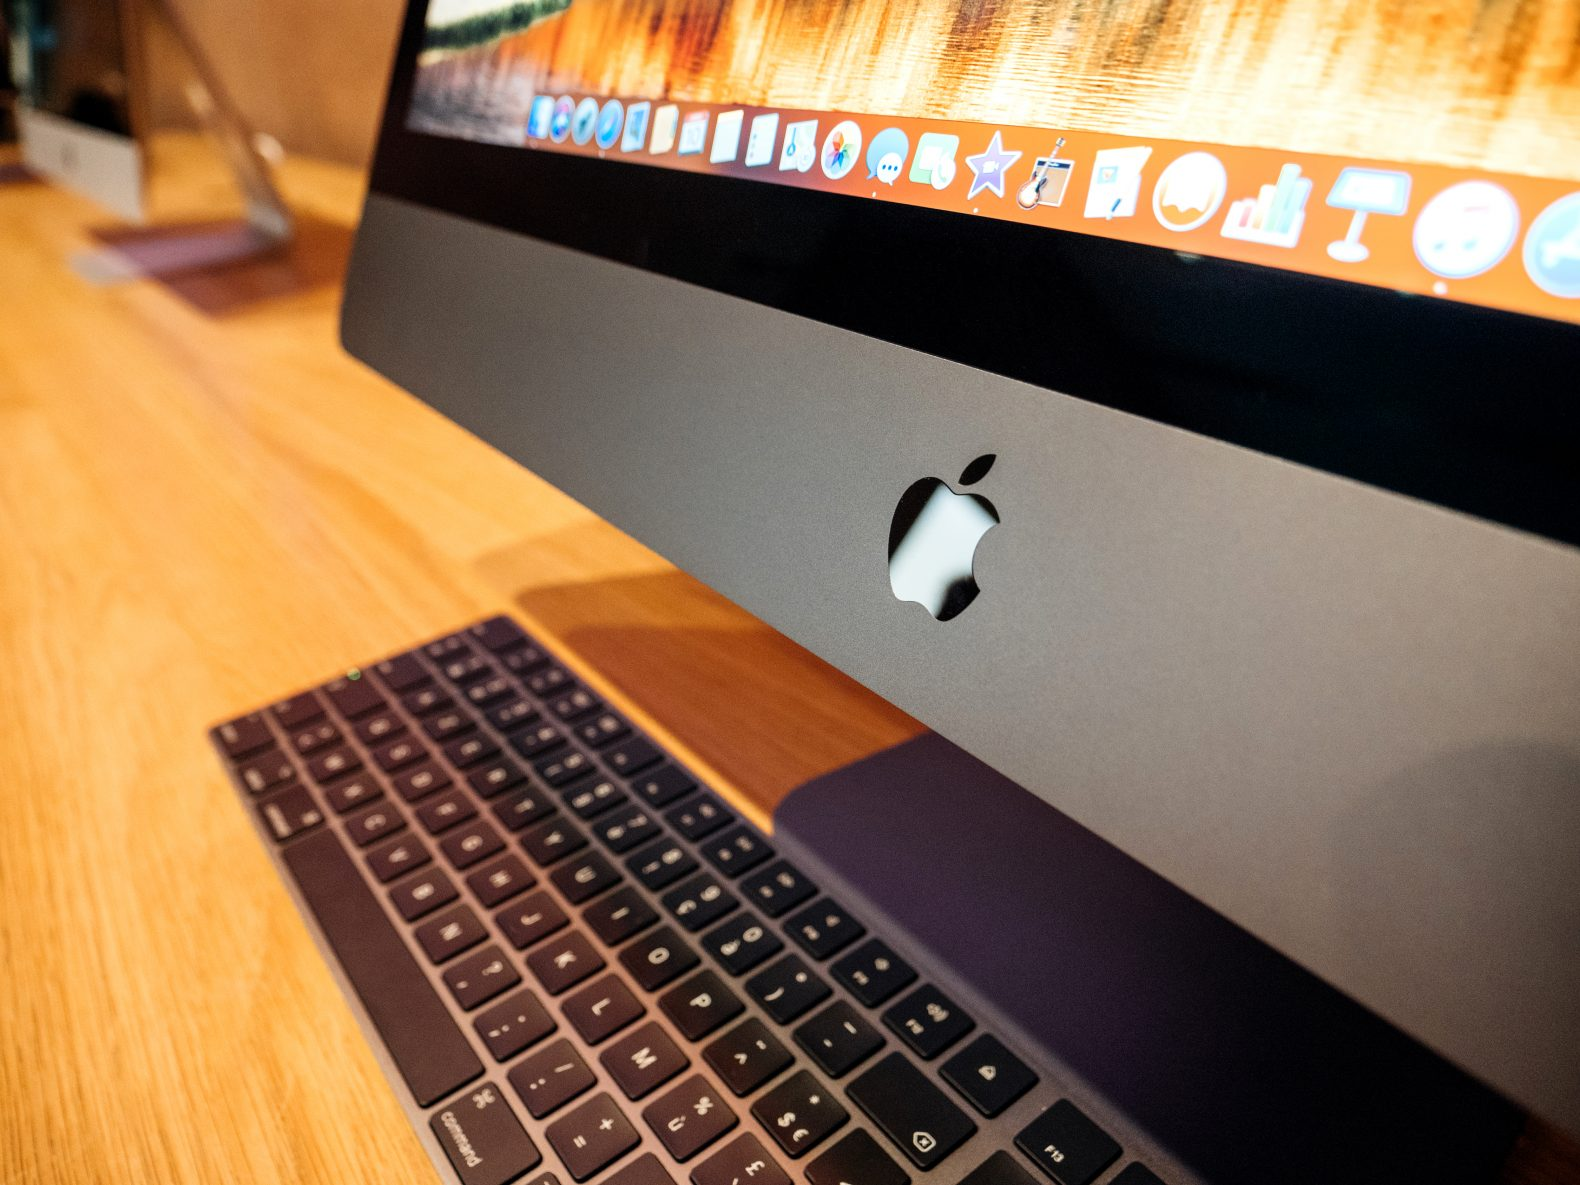 Apple To Ditch Intel Chips In Macs By 2020